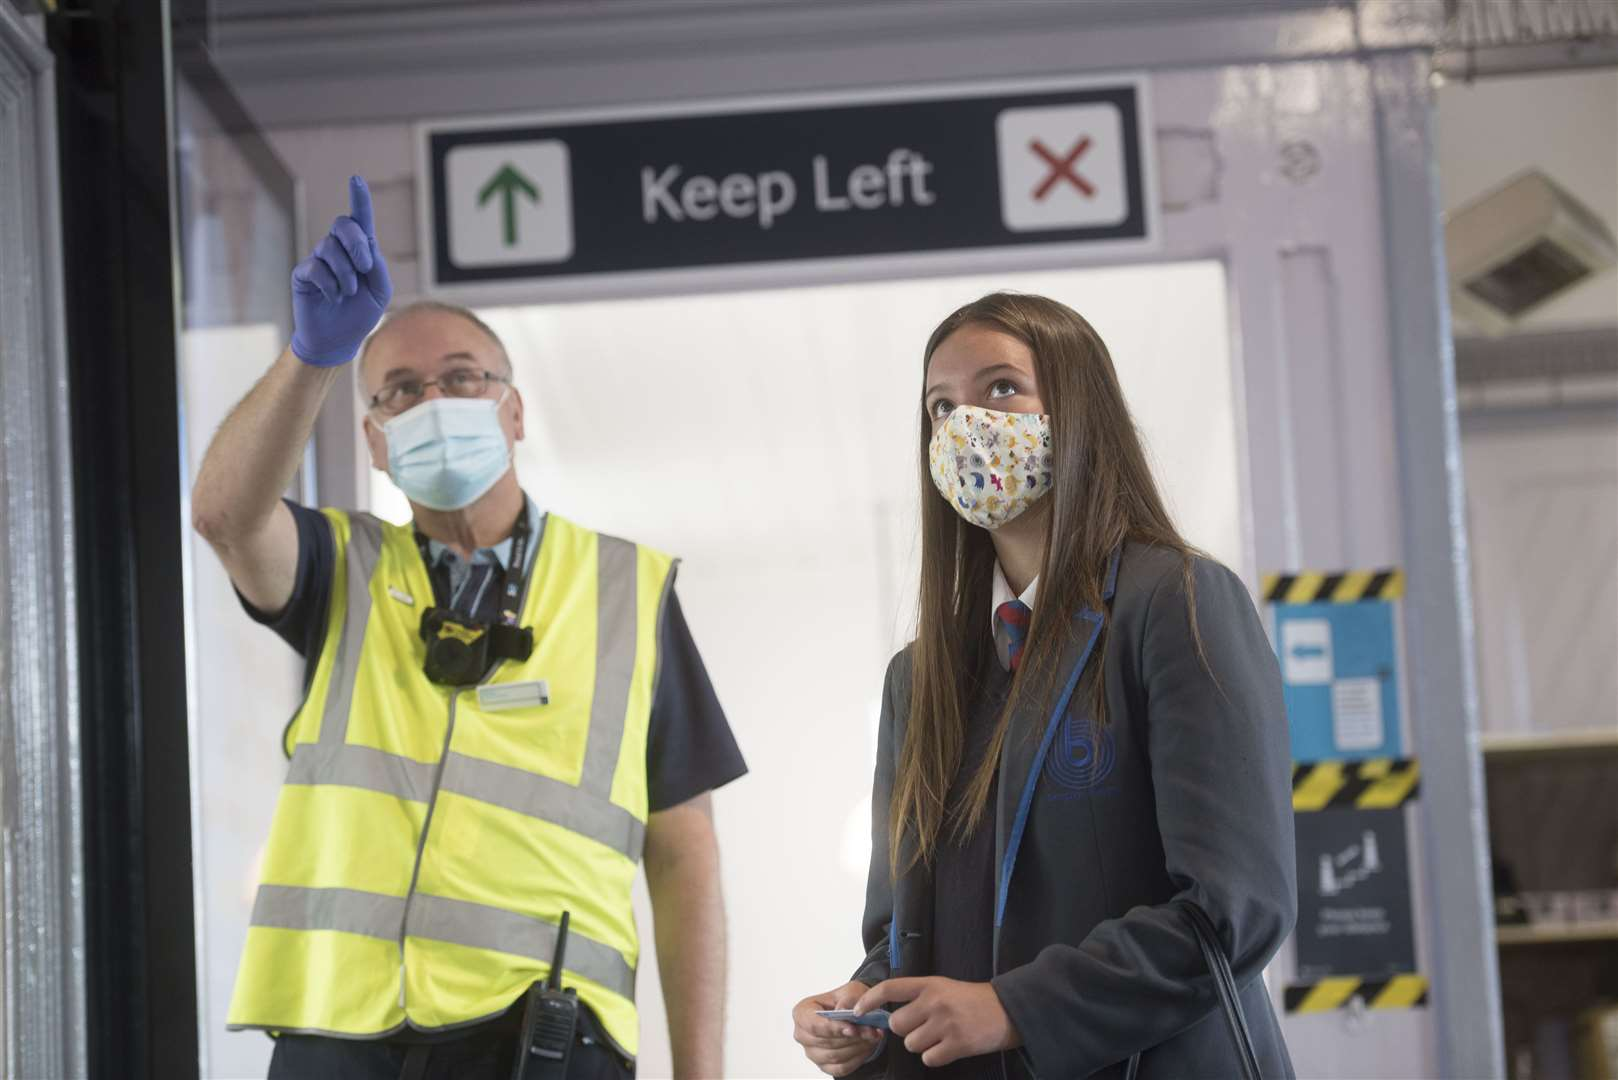 Southeastern had to introduce safety measures across their network to protect passengers from potential spread of coronavirus